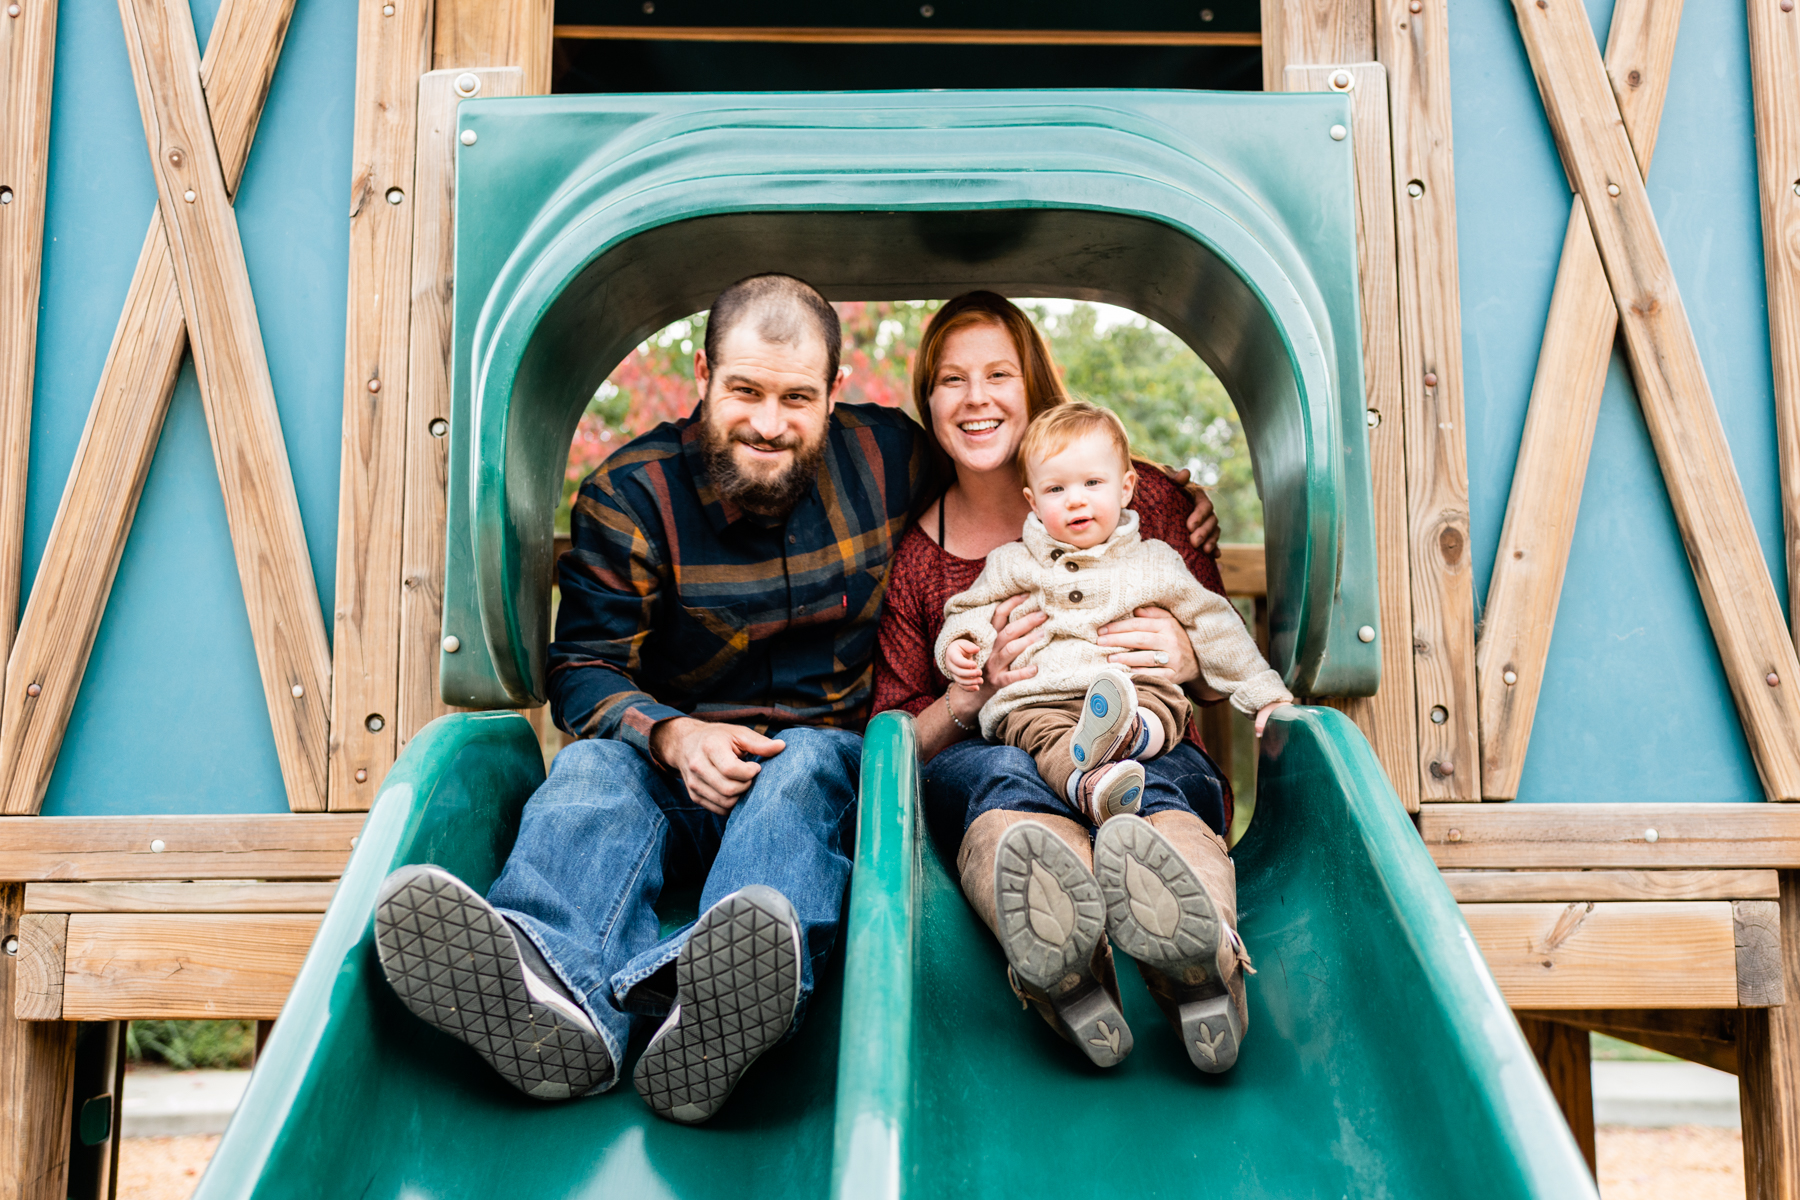 Family lifestyle session at the playground in Danville, CA.